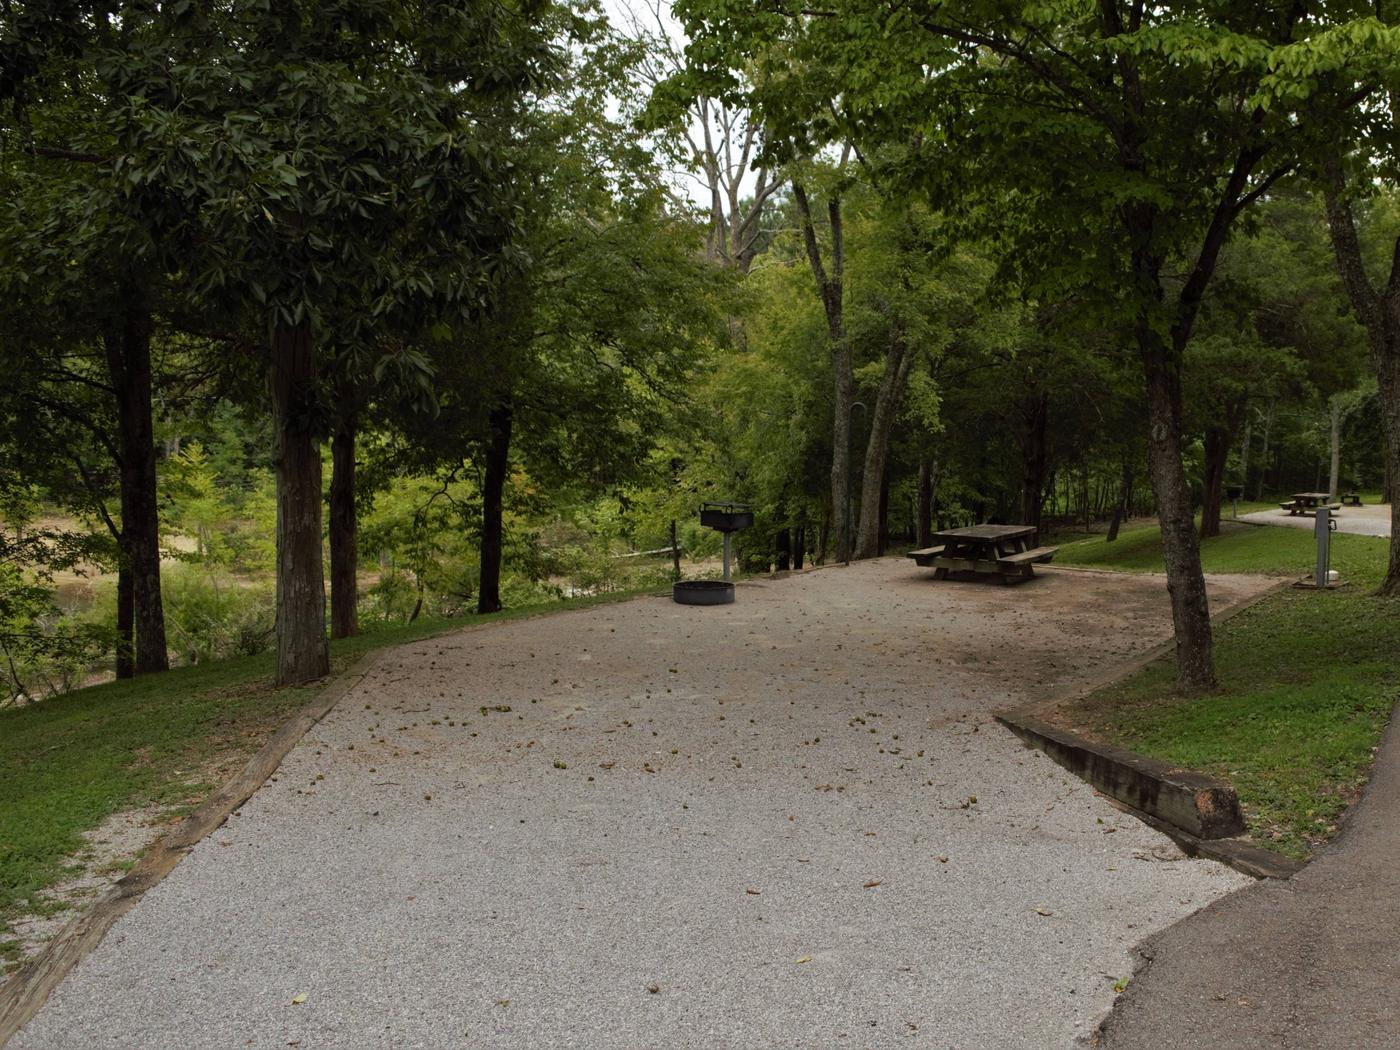 WILLOW GROVE CAMPGROUND SITE # 14